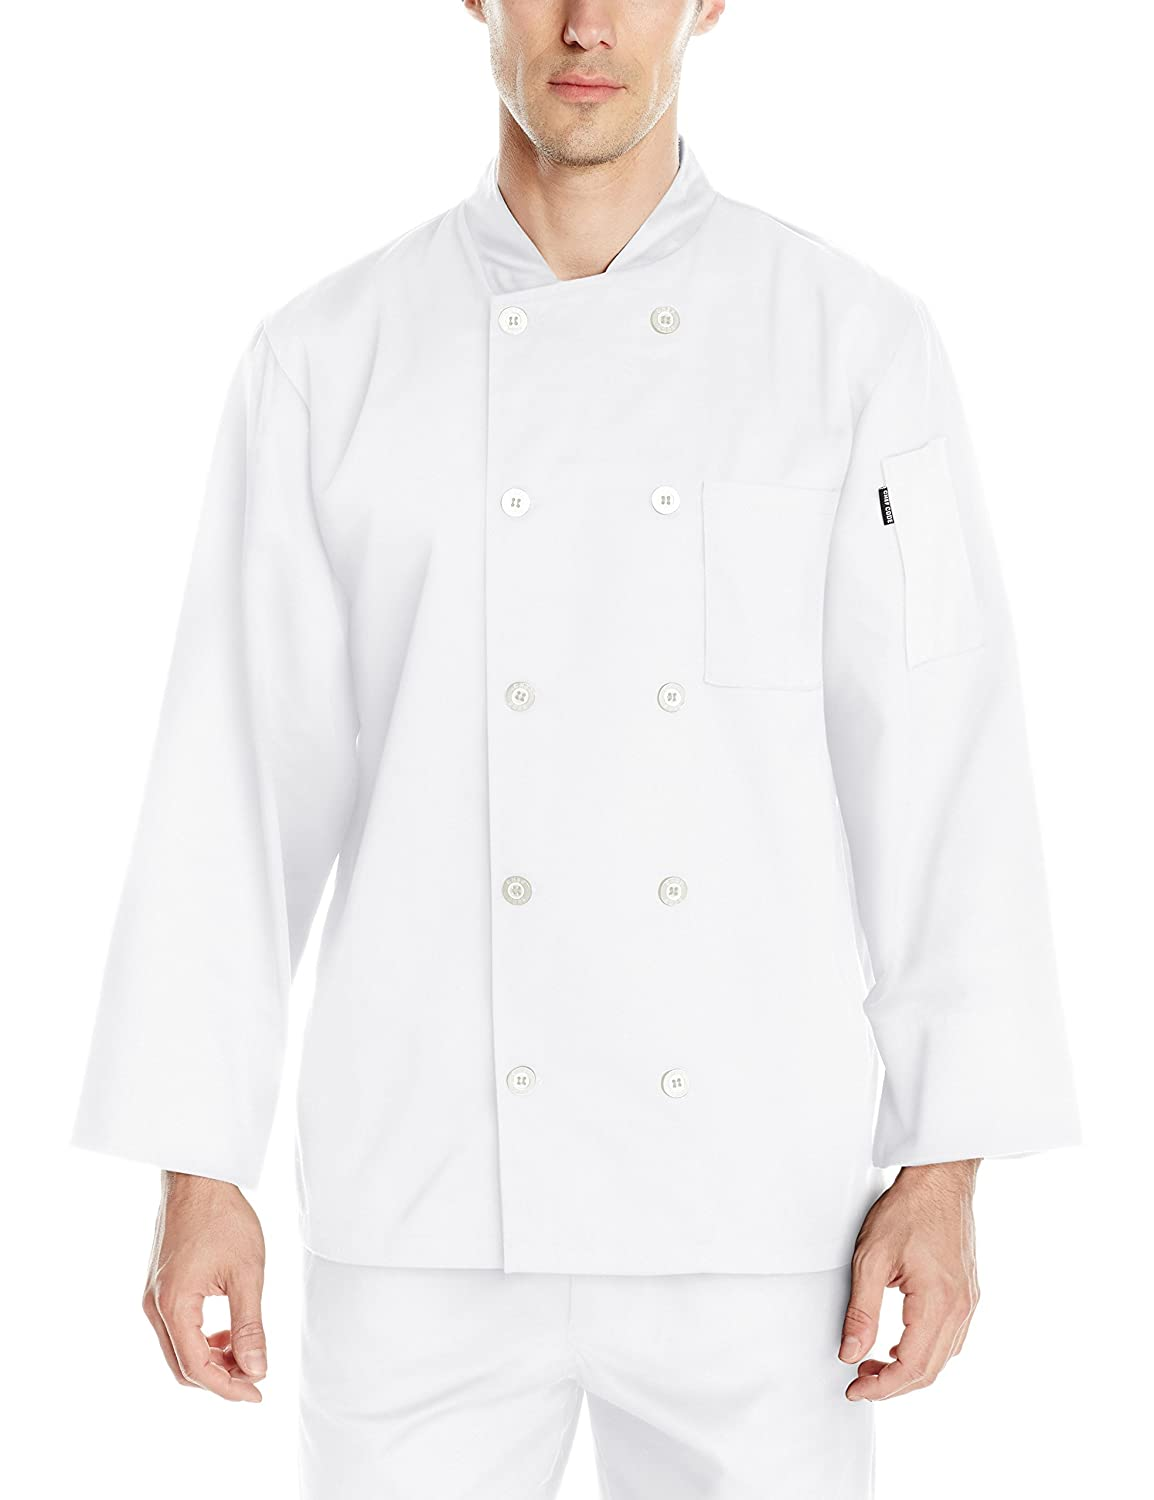 Chef Code Basic Men's Pearl Button Long Sleeve Coat Chef Code Uniforms CC110